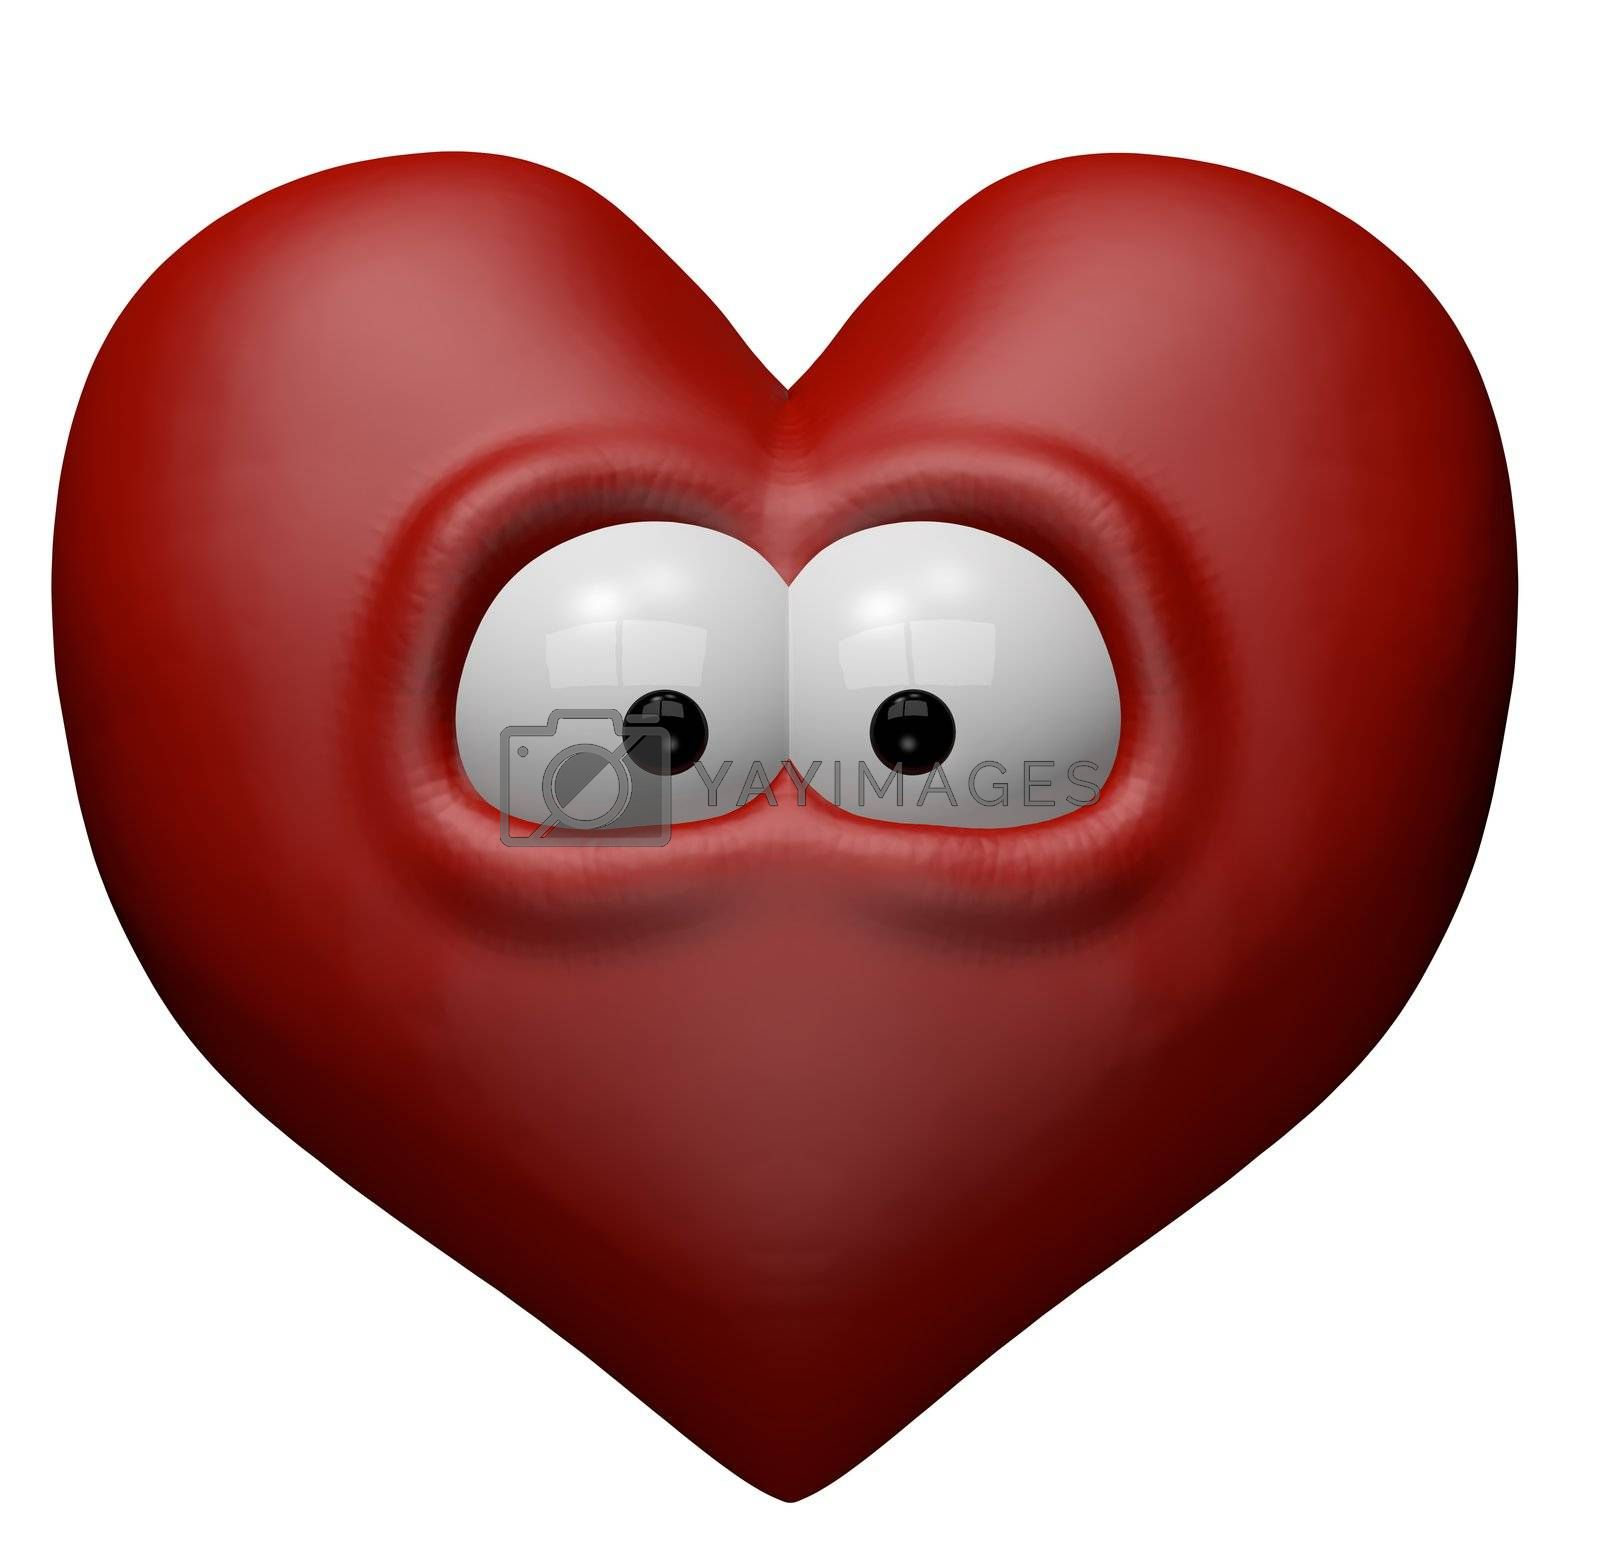 red heart with eyes - 3d cartoon illustration